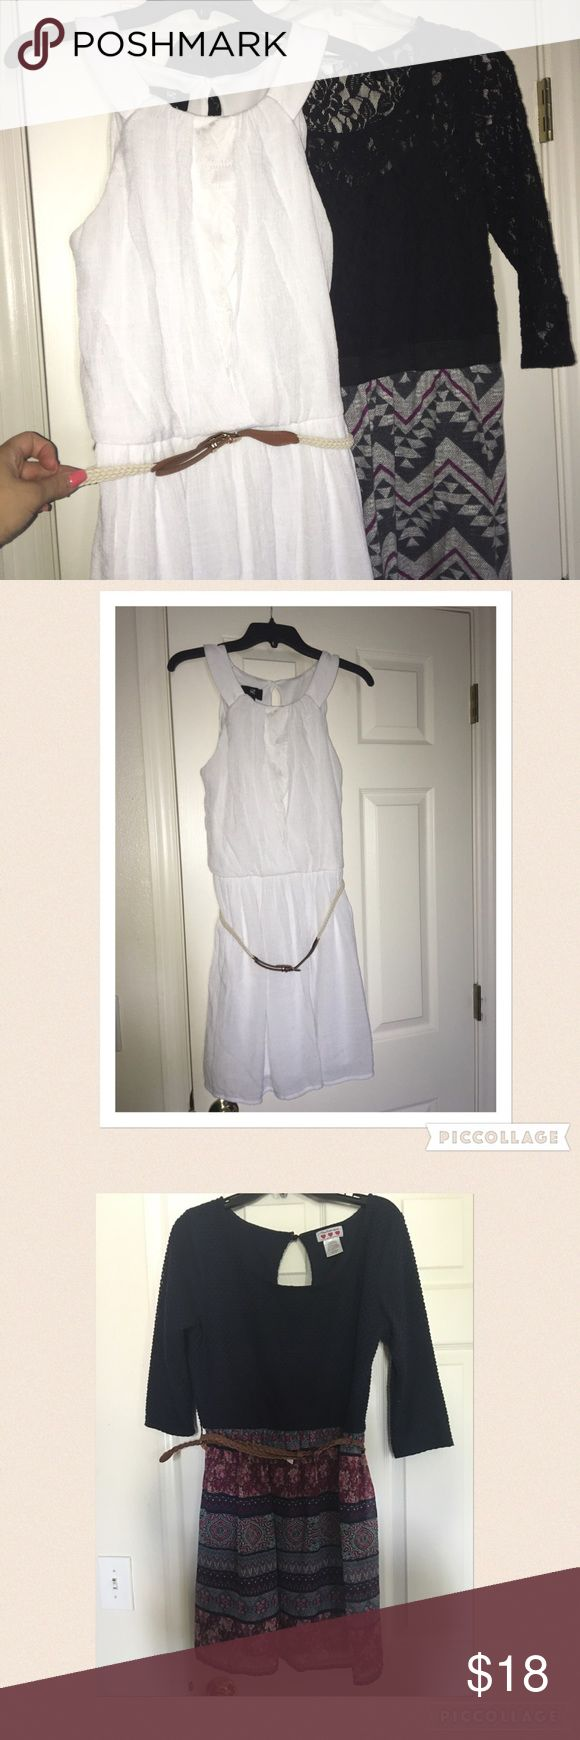 BOGO Two junior dresses  Listing Two Beautiful Junior Dresses. Please refer to individual listings for additional pics. Pre-loved Dresses